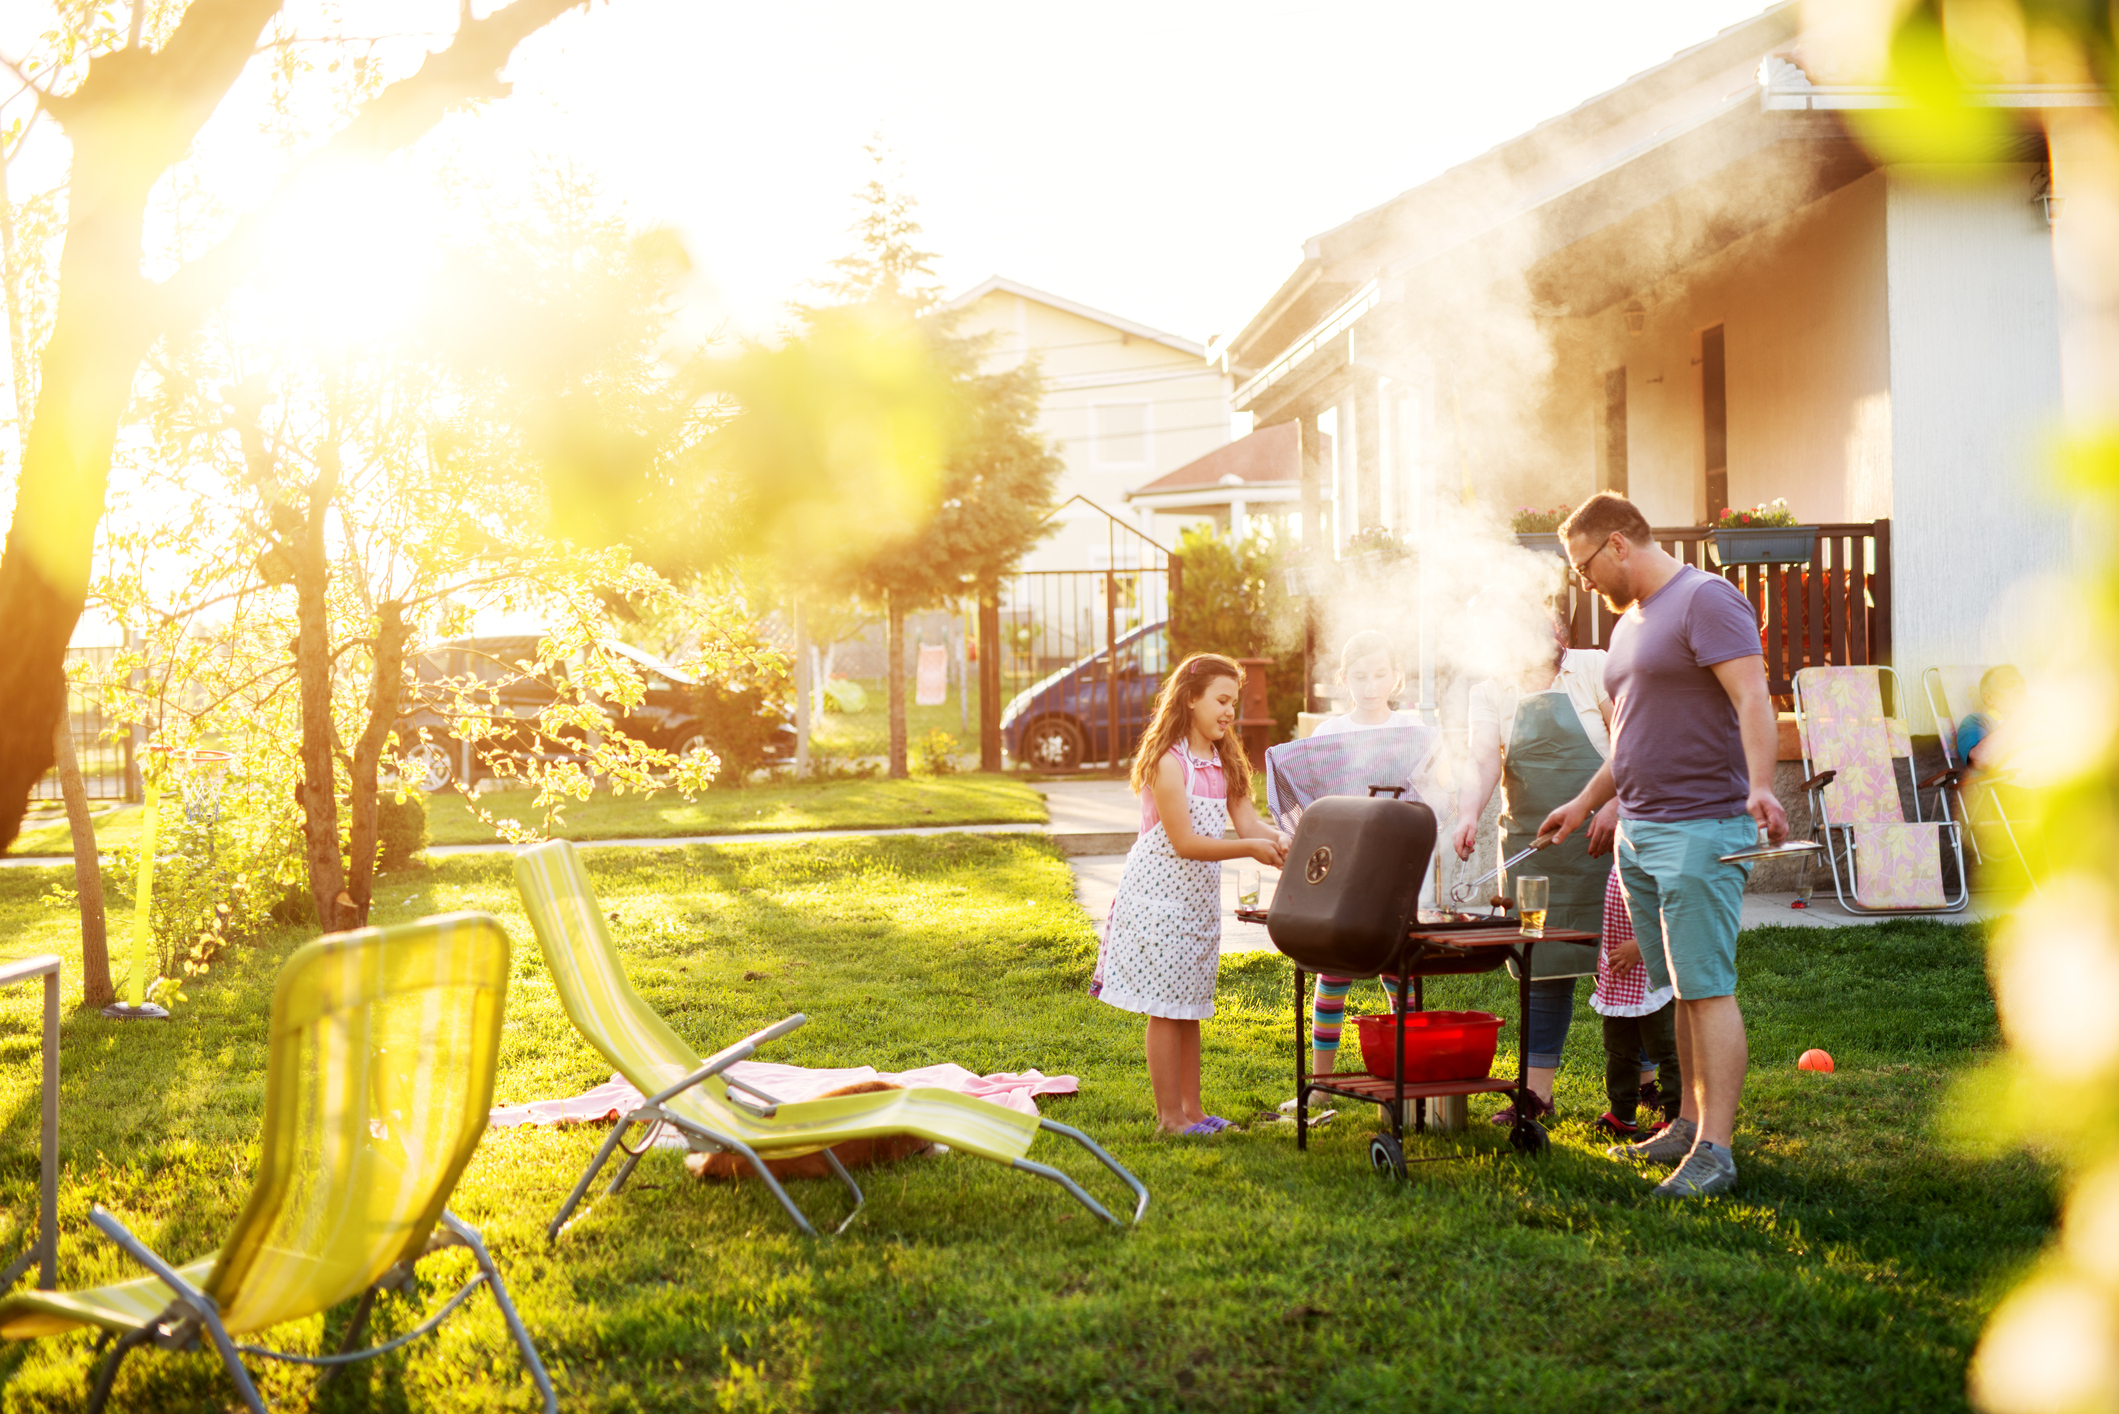 A family barbecuing in a sunny backyard.